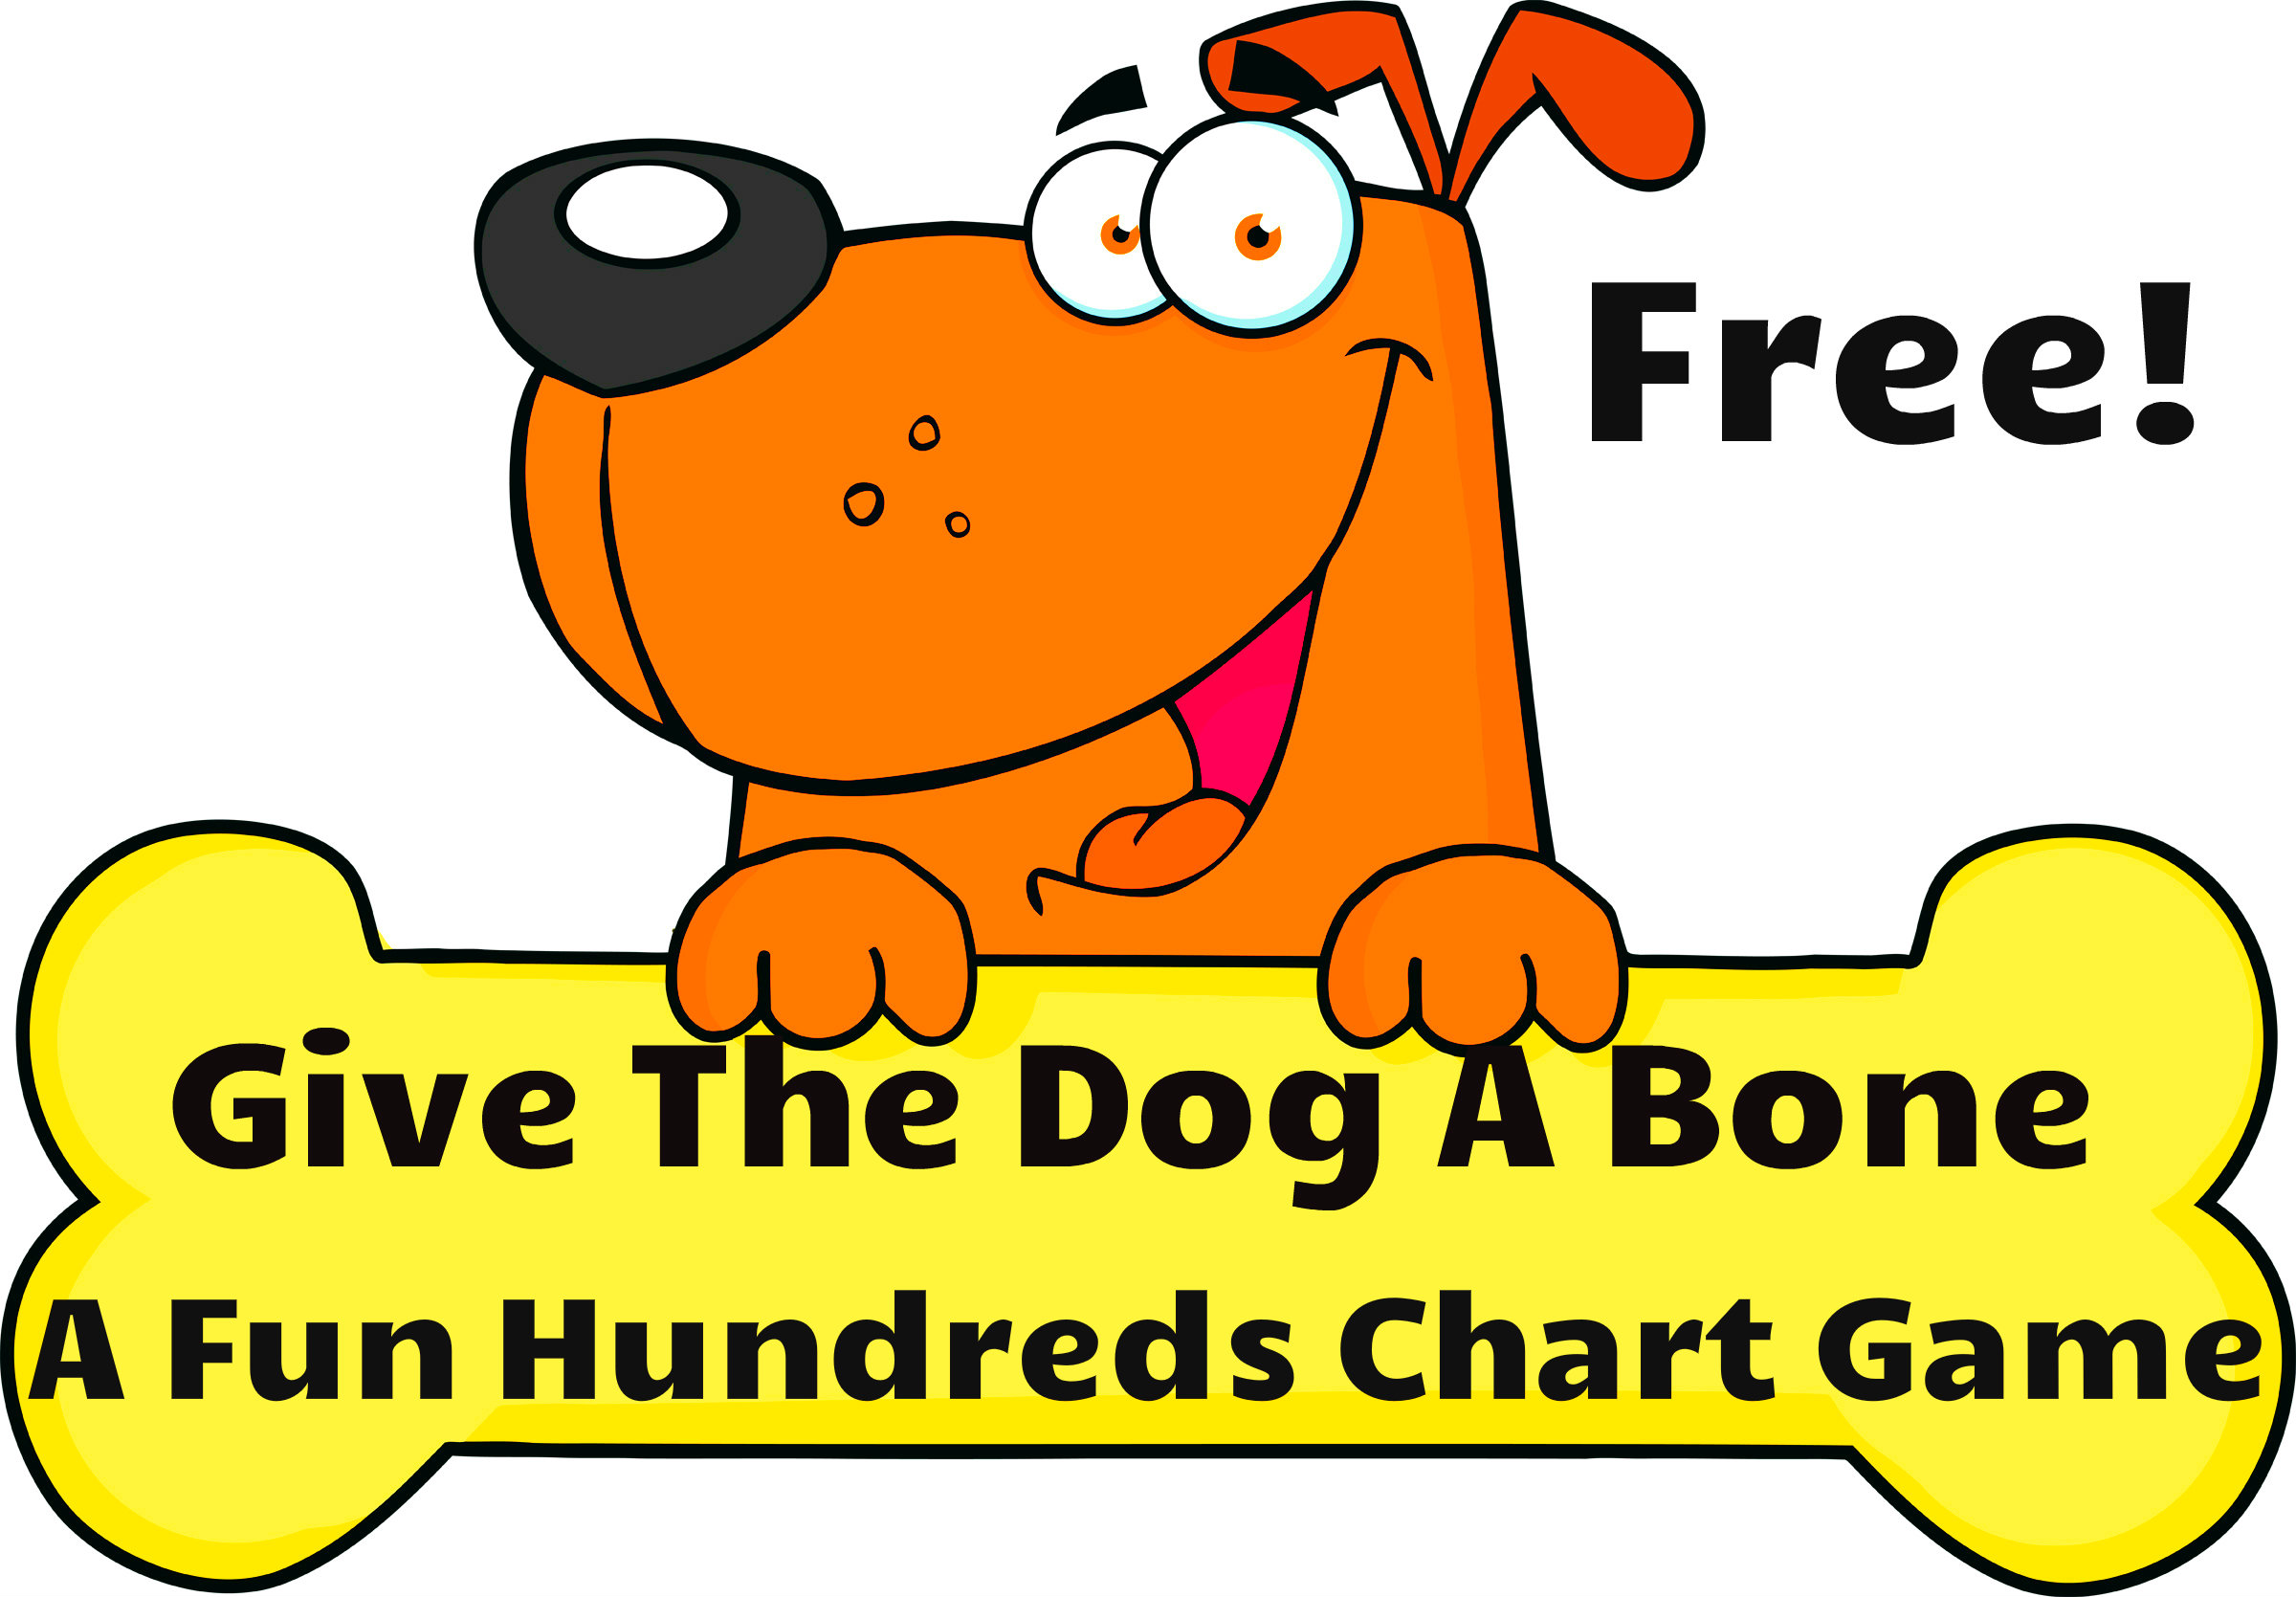 Hundreds Chart Game